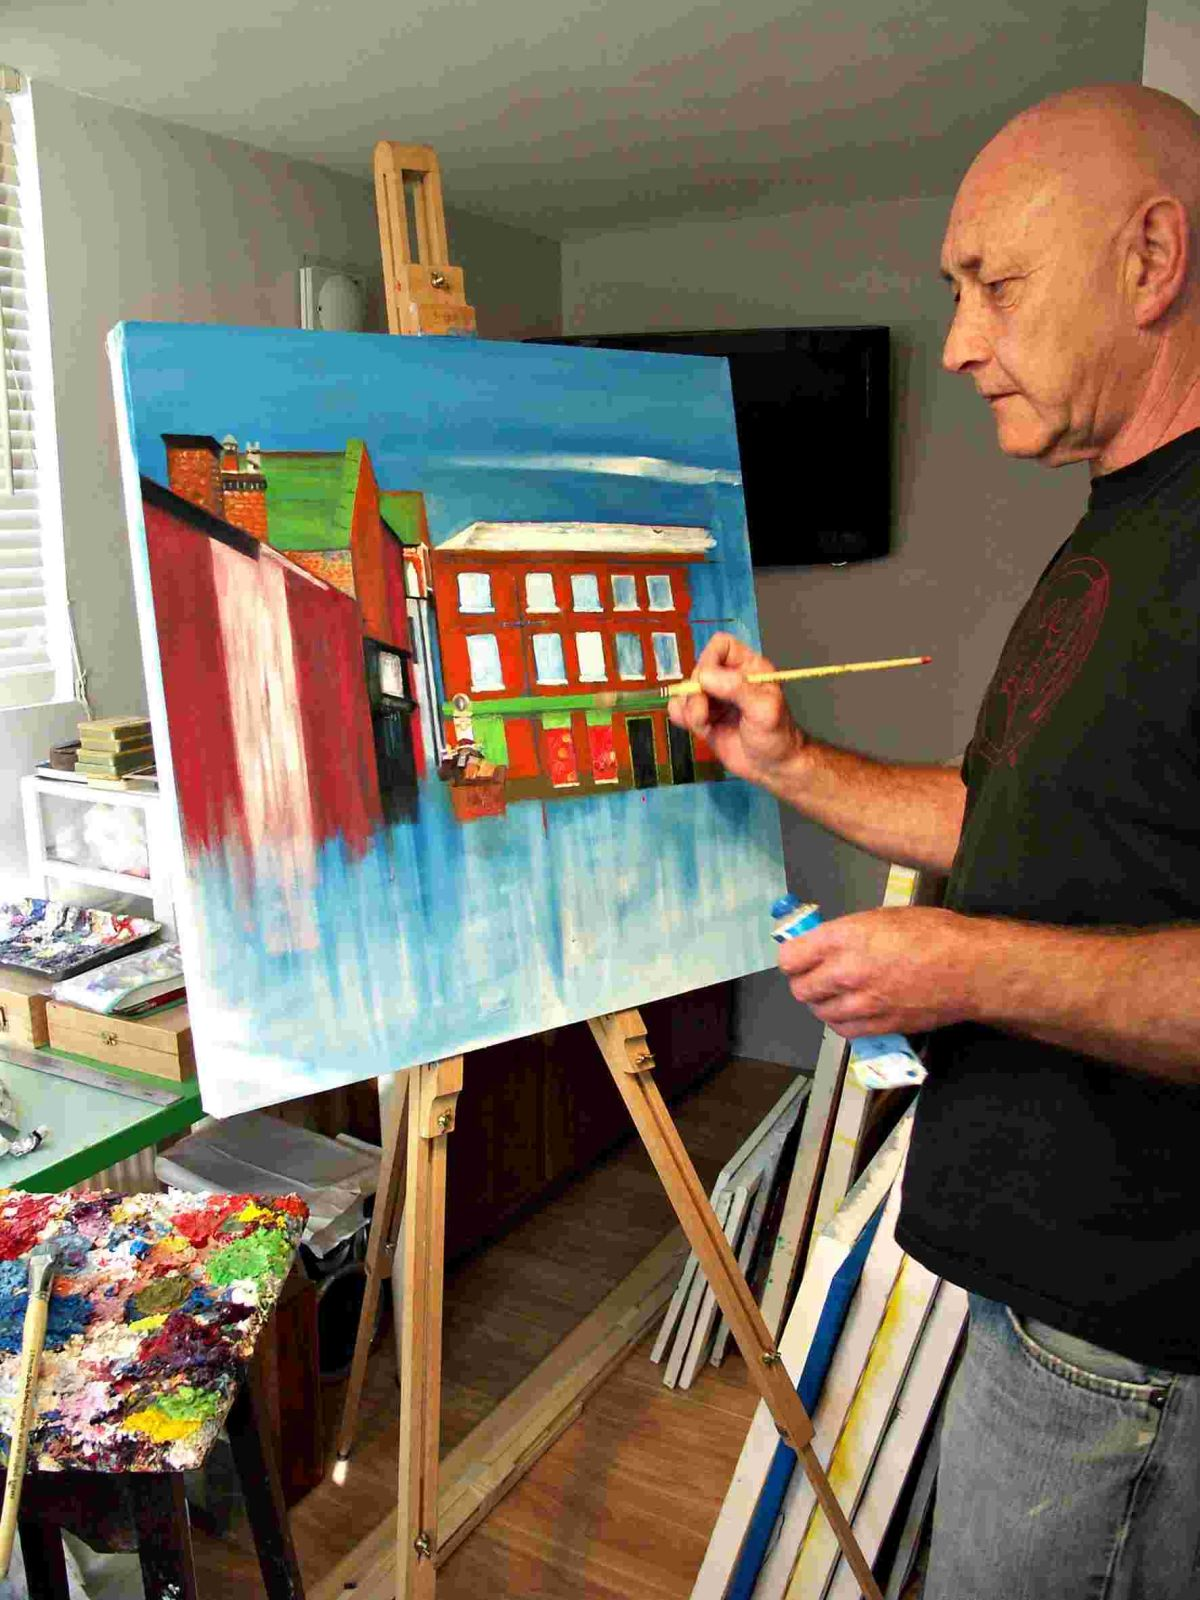 John Pothecary, 60, from Stanmore, has been painting all of his life